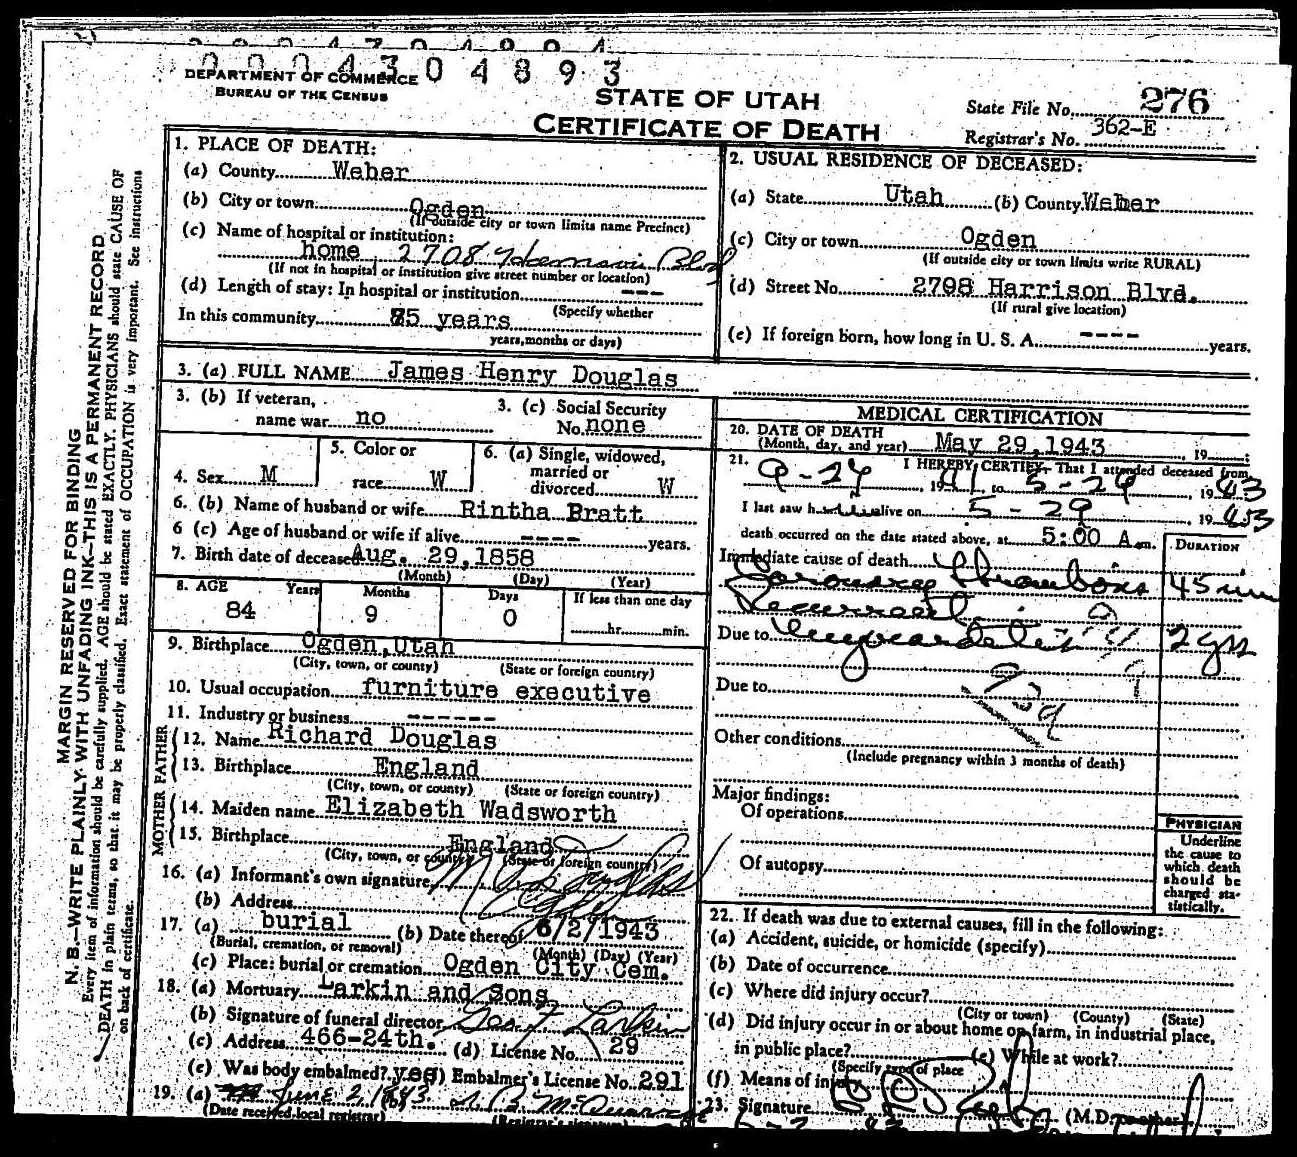 death certificate of james henry douglas